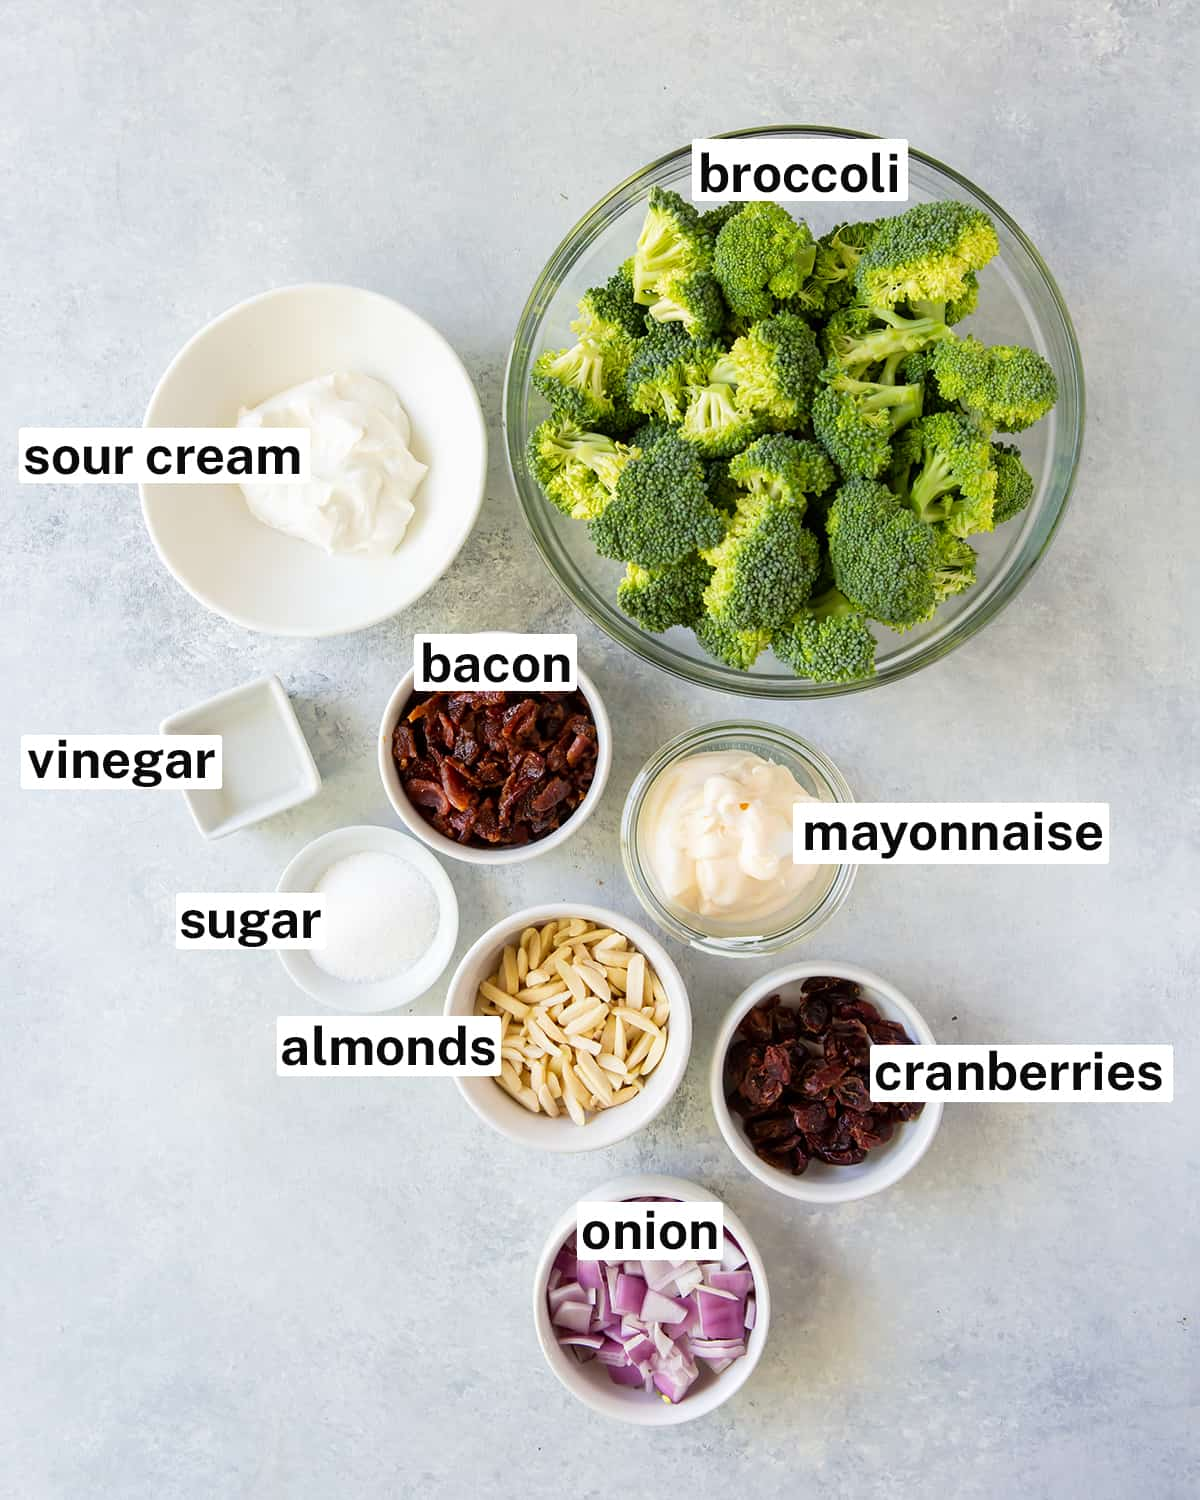 The ingredients needed for Broccoli Salad with text overlay.